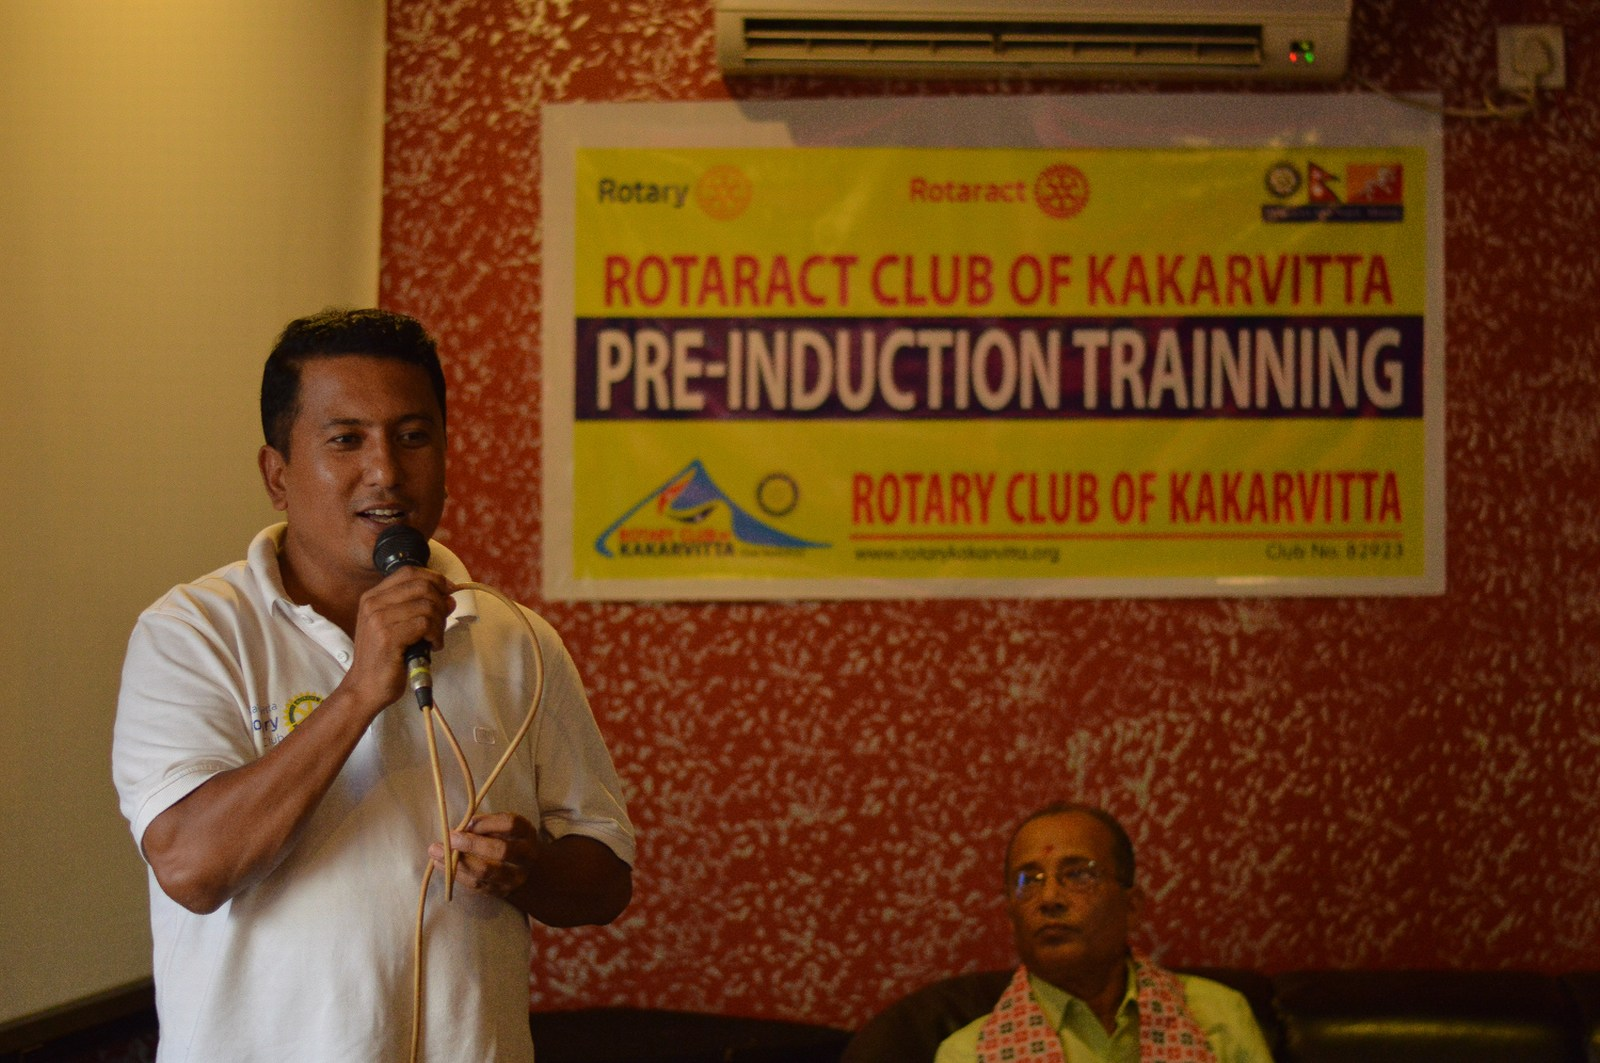 Pre-Induction-Training-of-Rotaract-Club-of-Kakarvitta-Rotary-Club-of-Kakarvitta-32